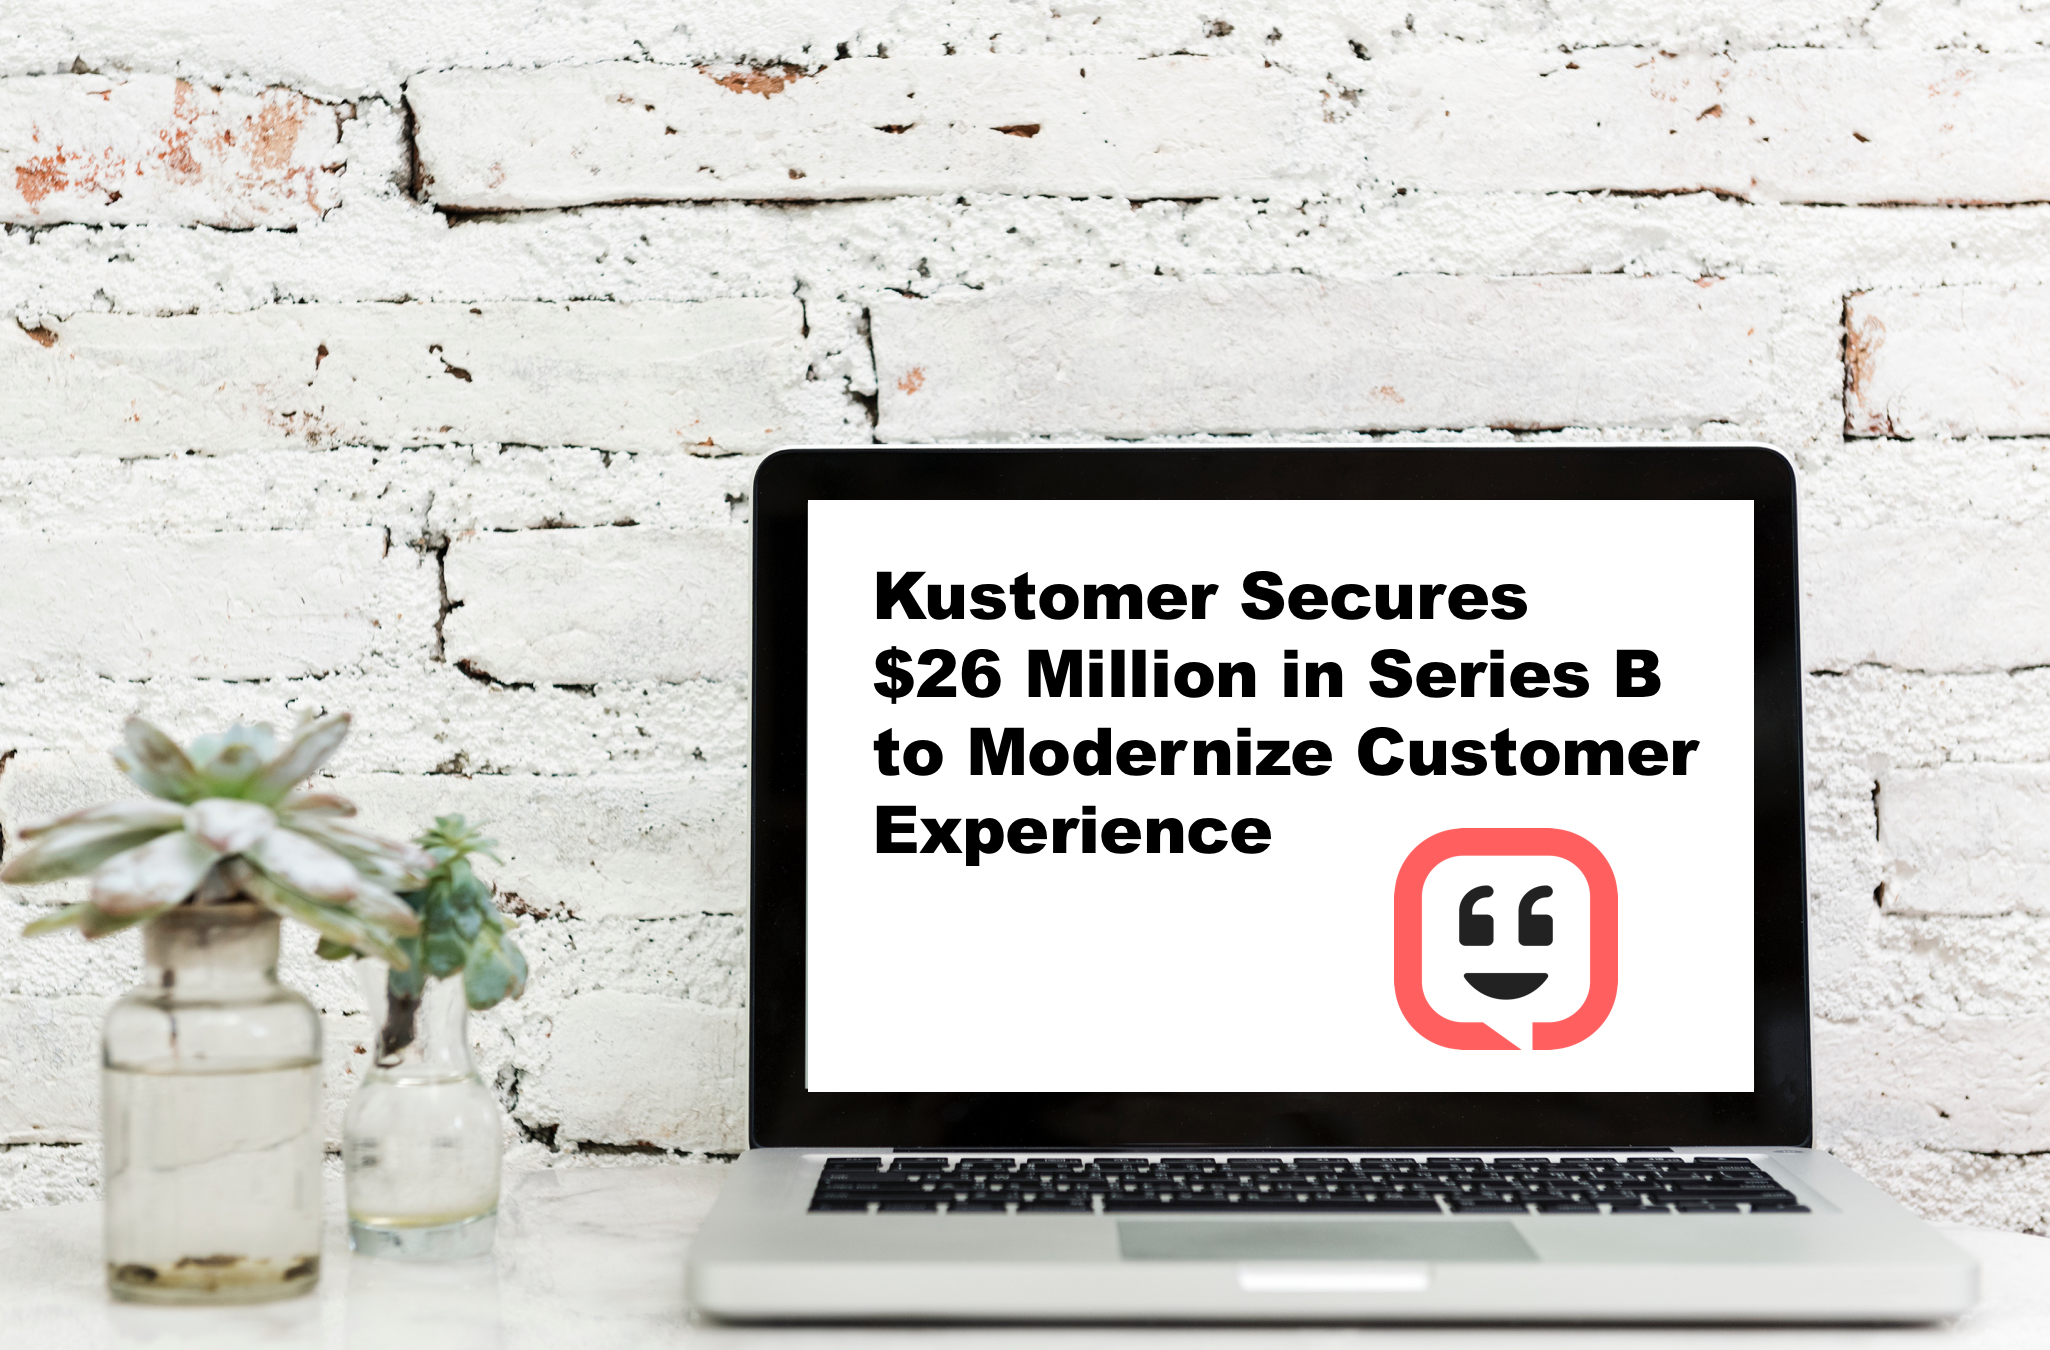 We Just Raised $26M. Here's Why That's Great News for Your Customers